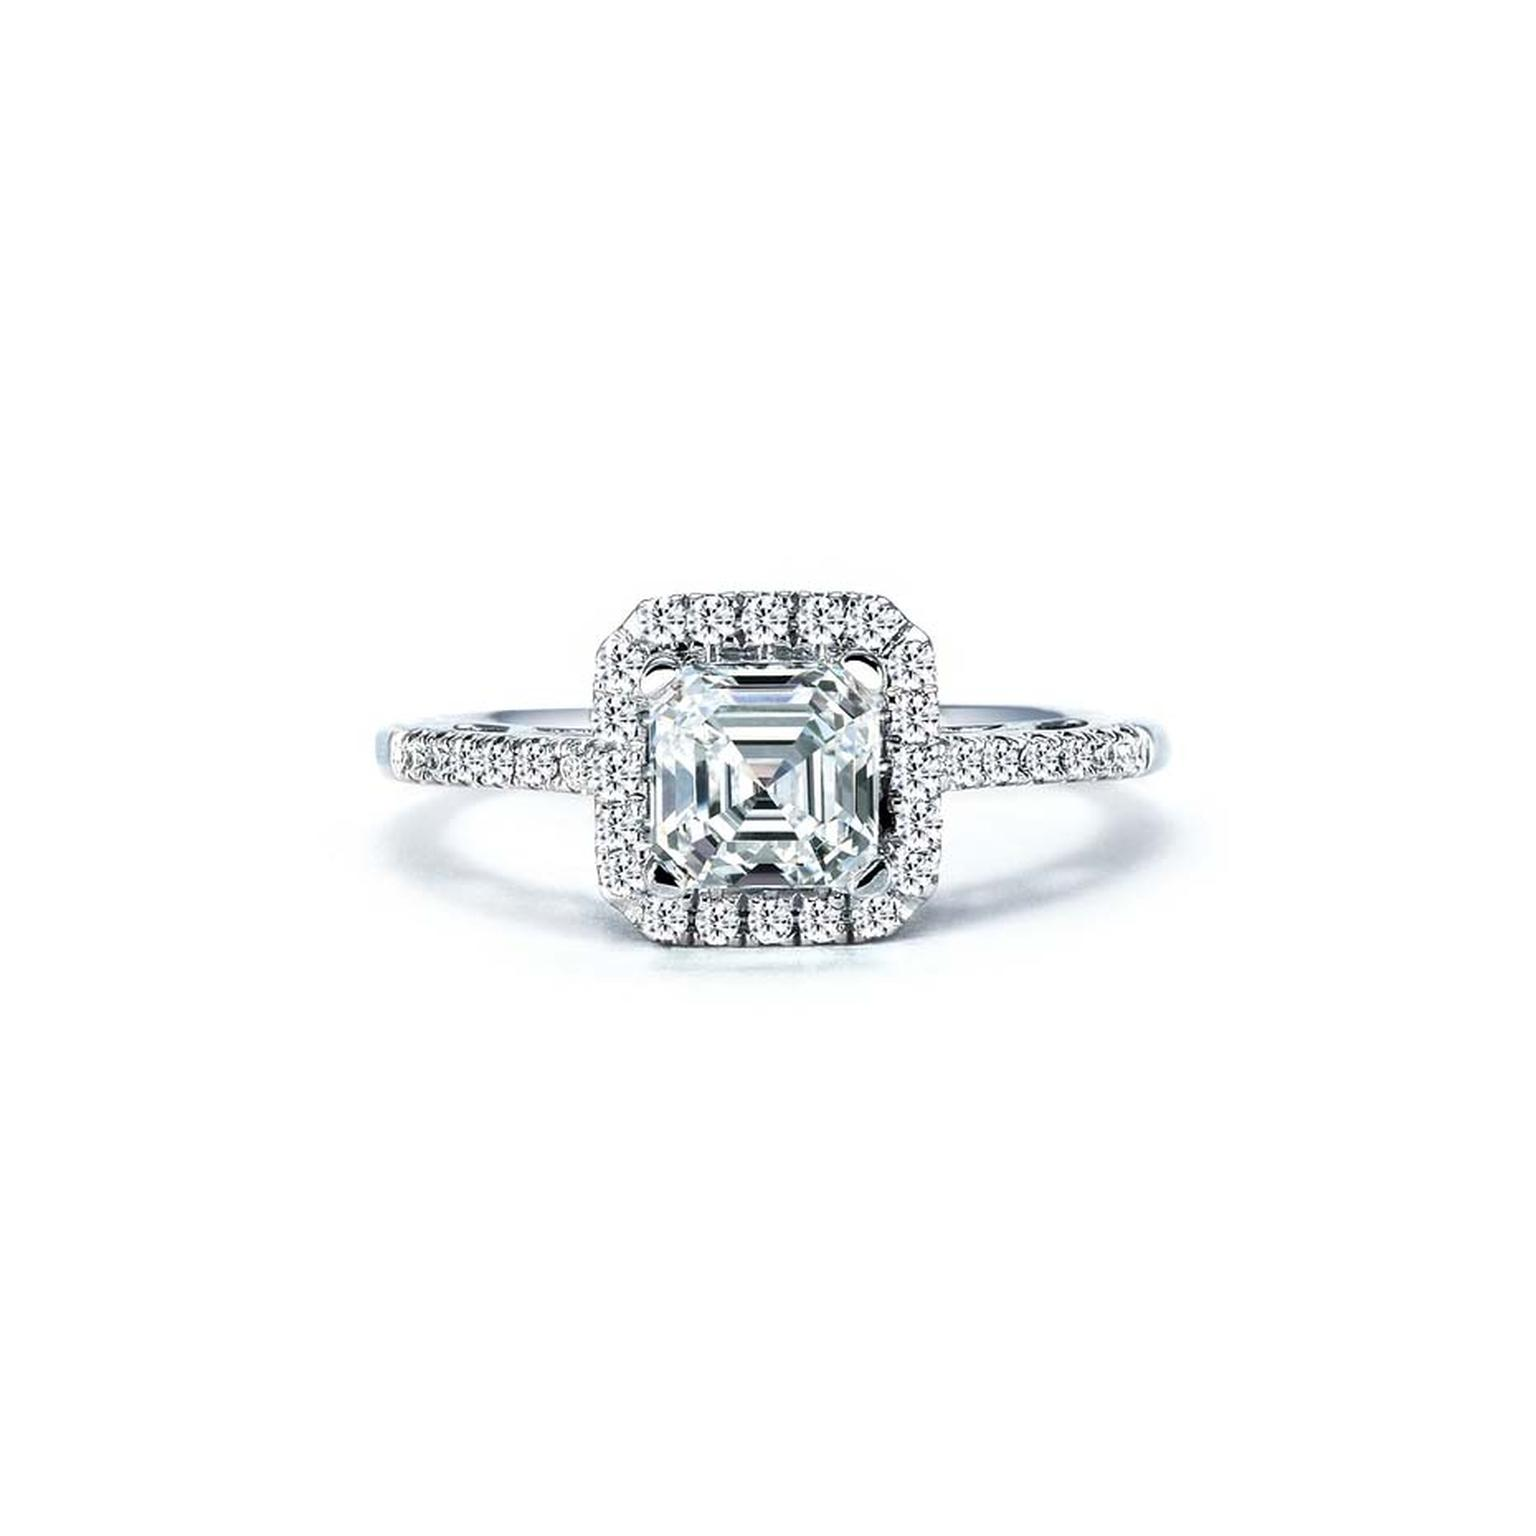 Royal Asscher cut diamond engagement ring in white gold with a diamond halo surround. Also available in platinum and yellow gold.